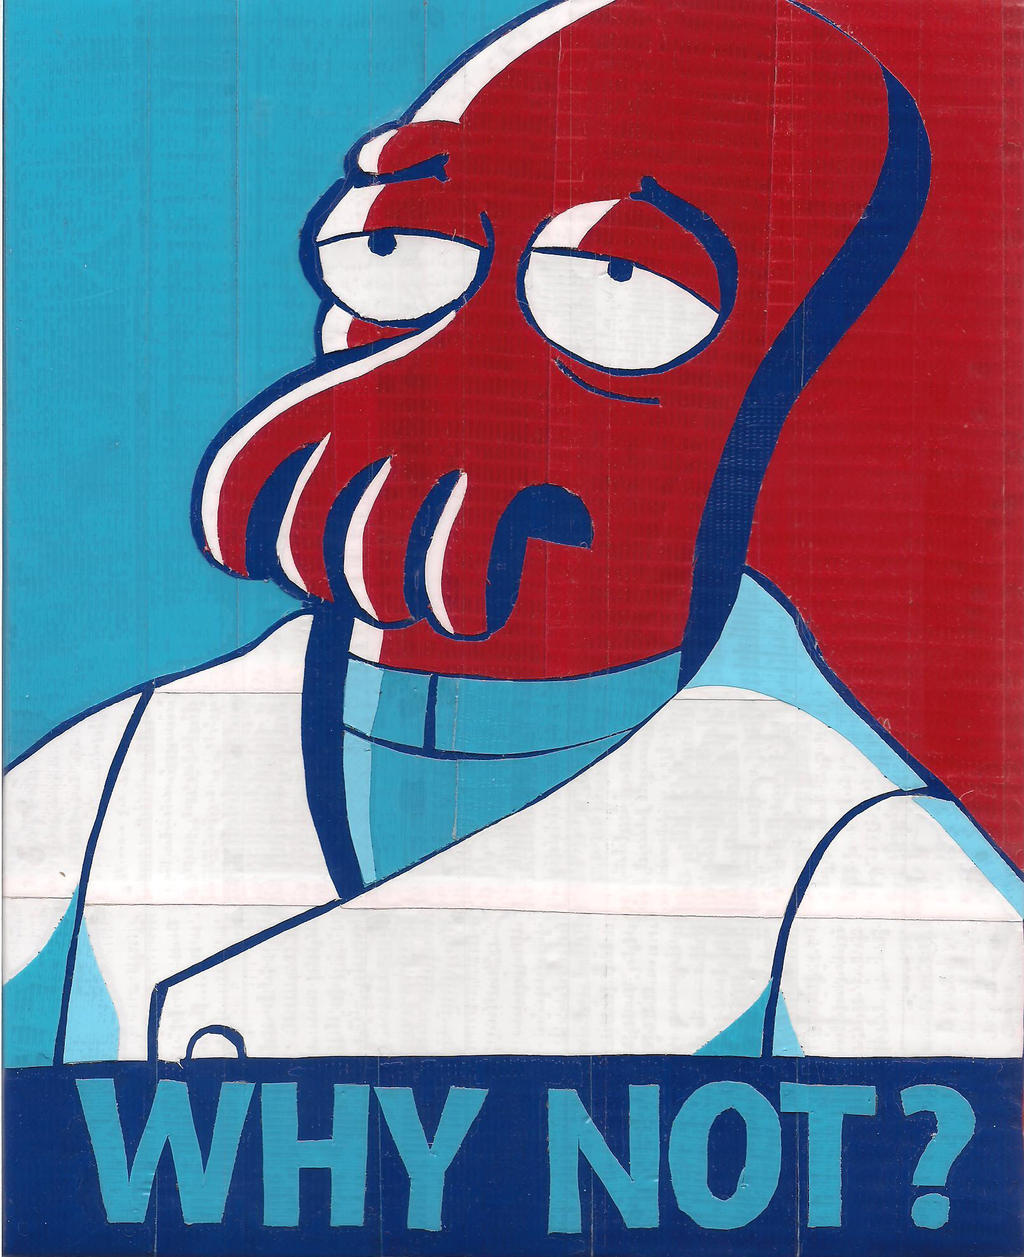 Why Not Zoidberg? by DuctileCreations on DeviantArt